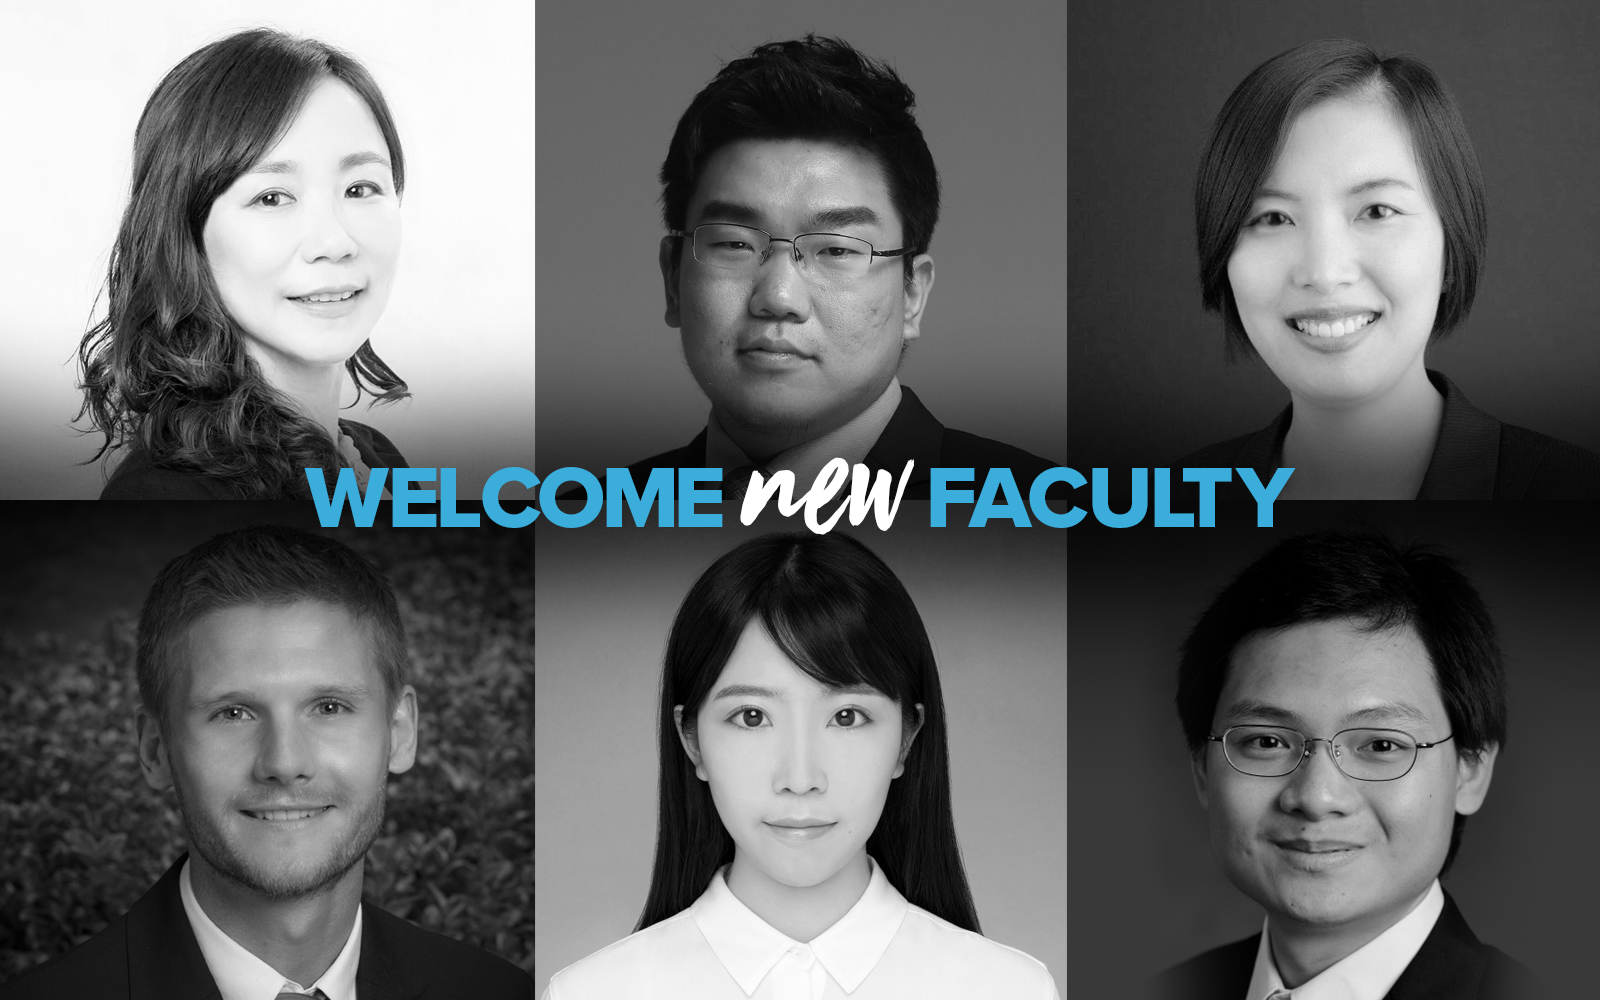 Top row, left to right: Yiming Qian (Finance), Miao Bai (OPIM), Nina Xu (Accounting).  Bottom row, left to right: Stefan Hock (Marketing), Chen Liang (OPIM), Weining Bao (Marketing). (UConn School of Business)